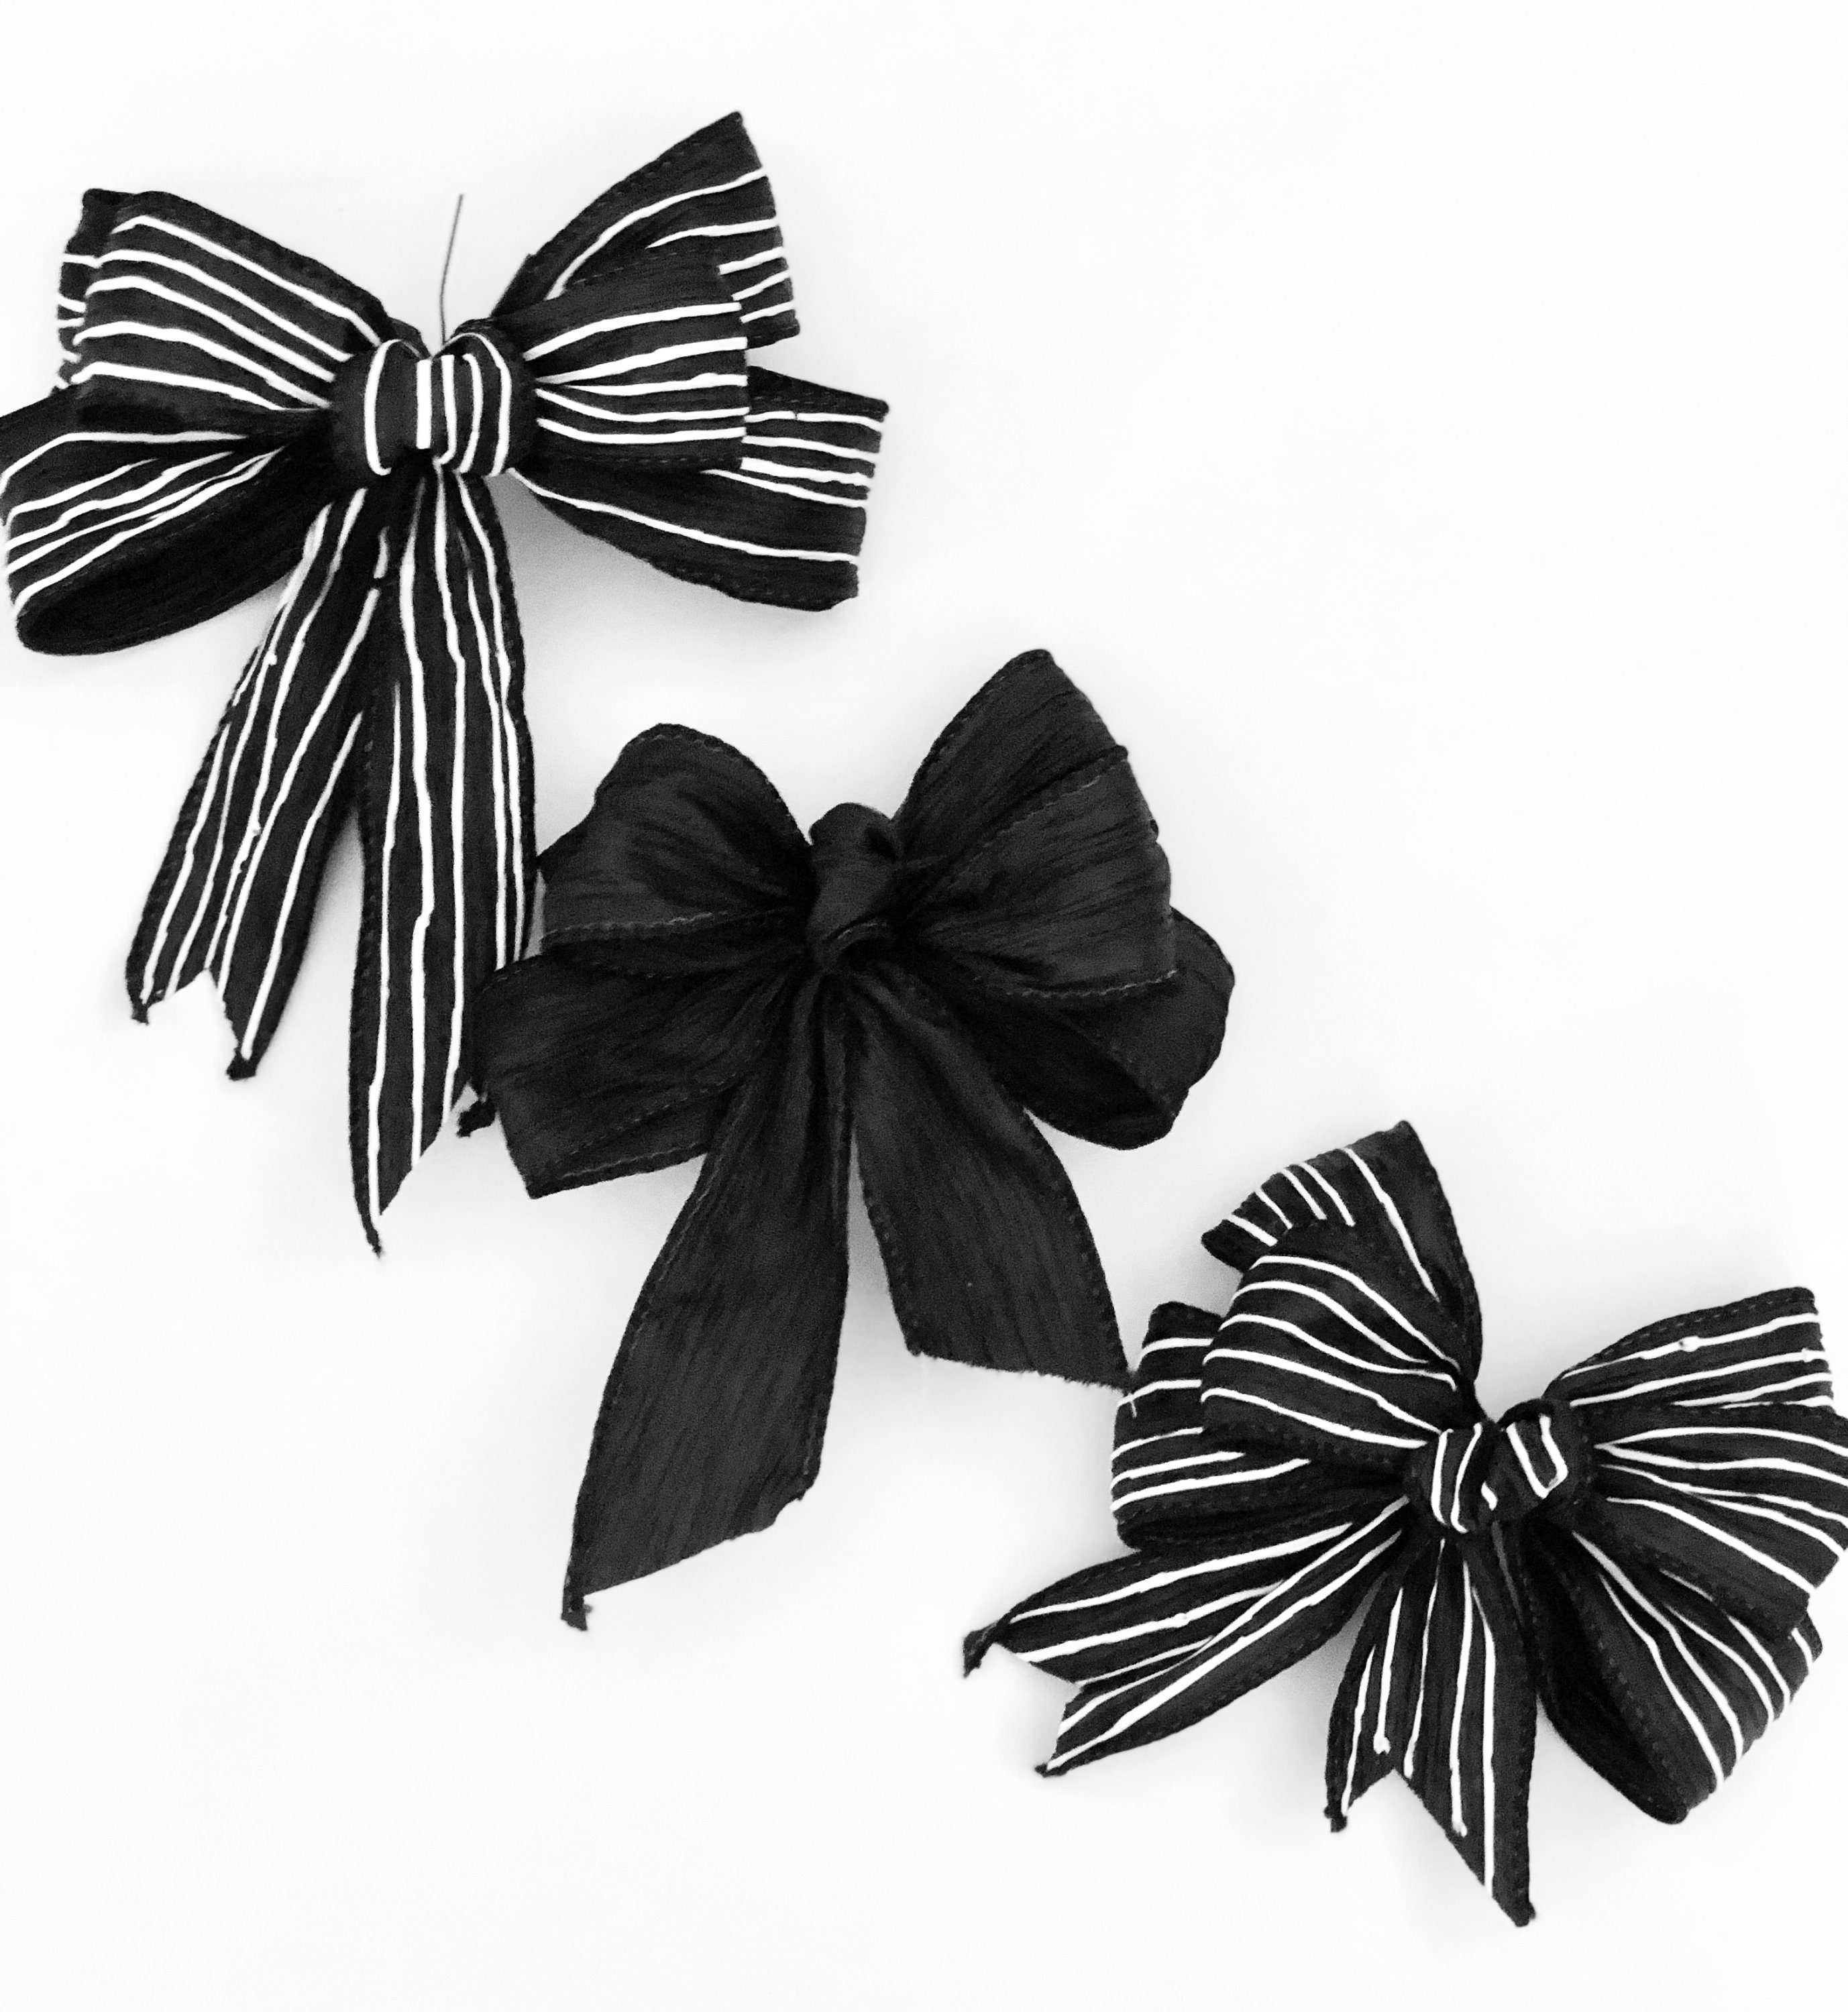 Wired Black & White Striped Bows